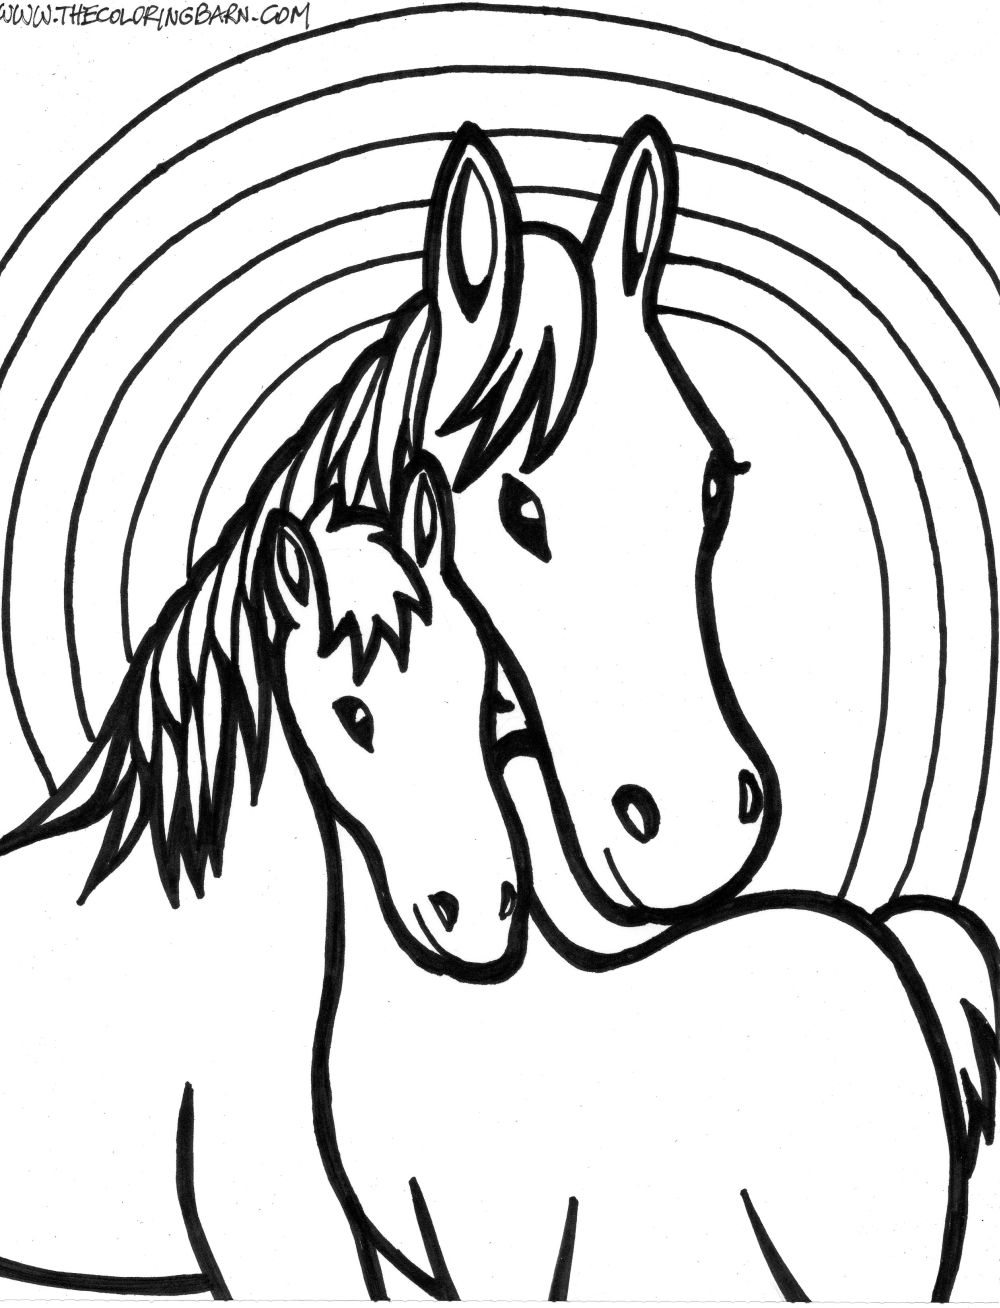 Coloring Pages To Color Free Download Best Coloring Pages To Color